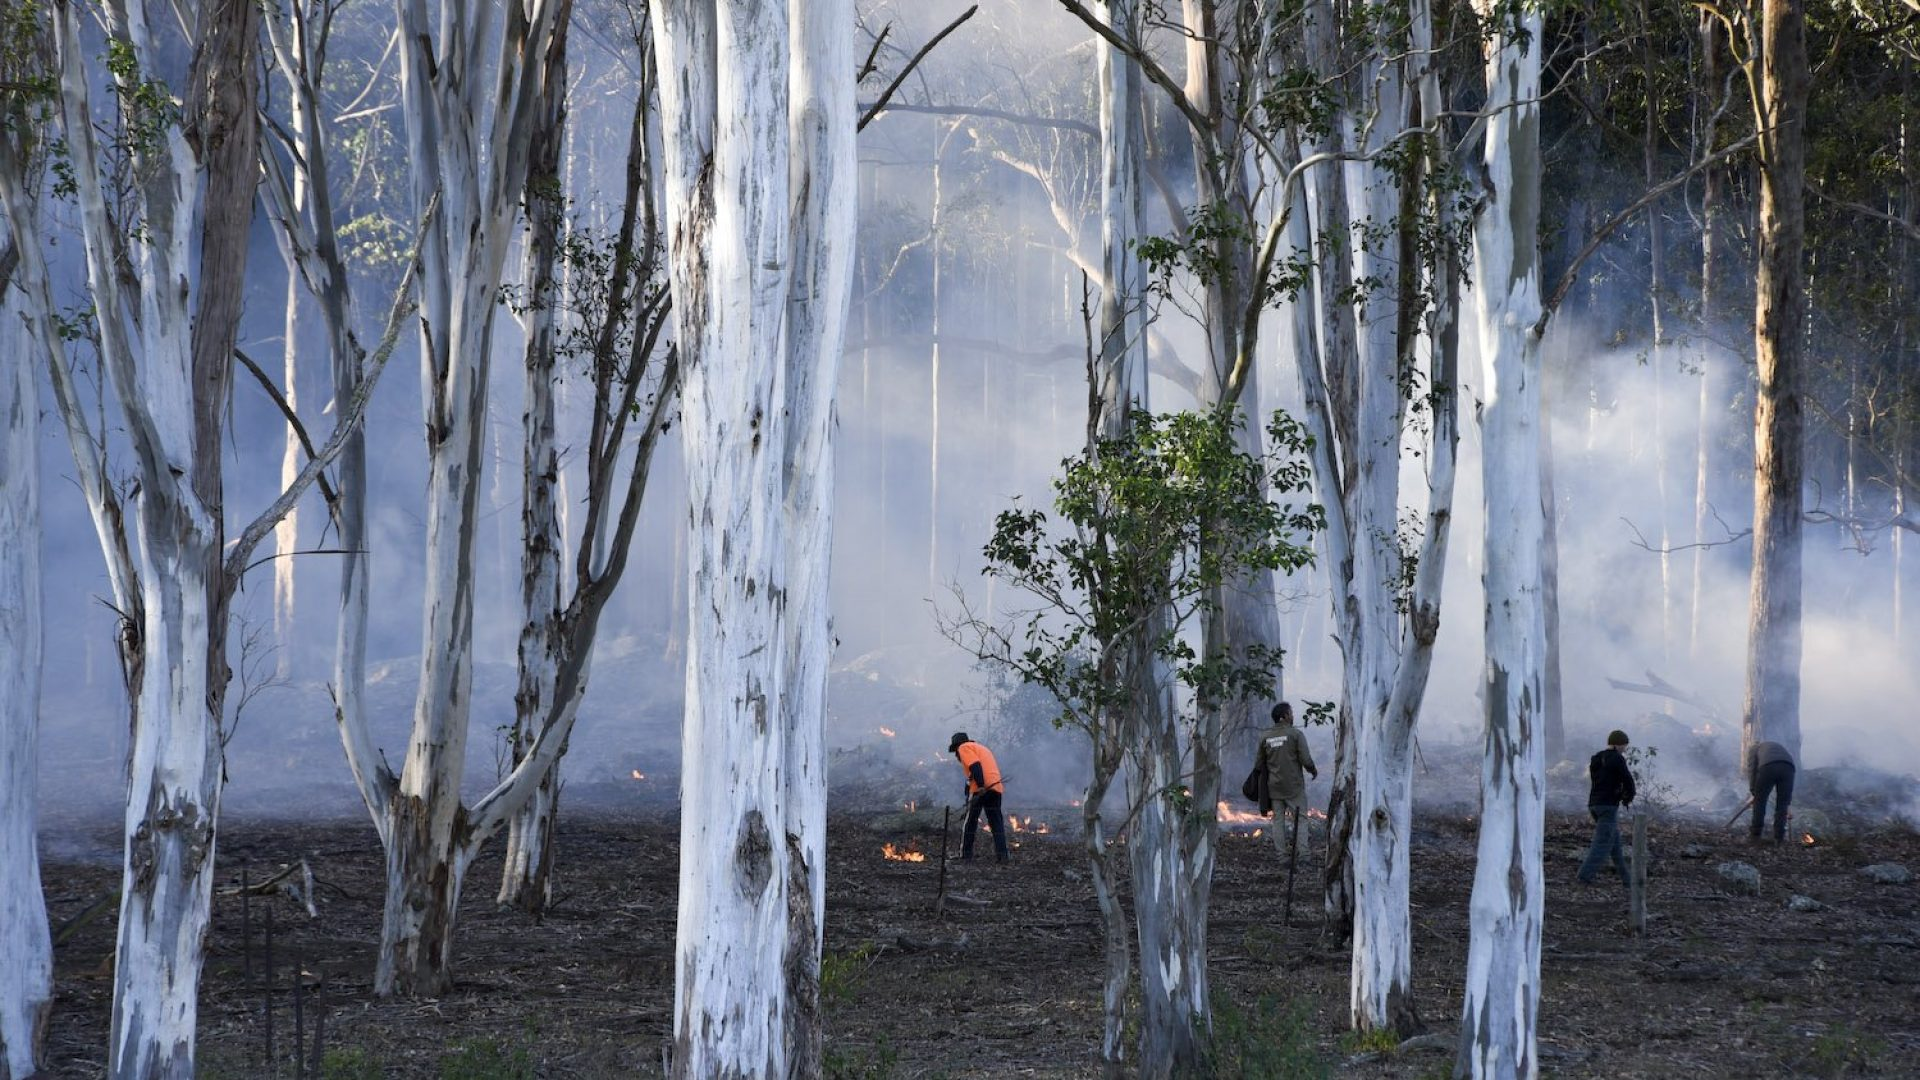 Cultural burning. Group of people in a smokey forest